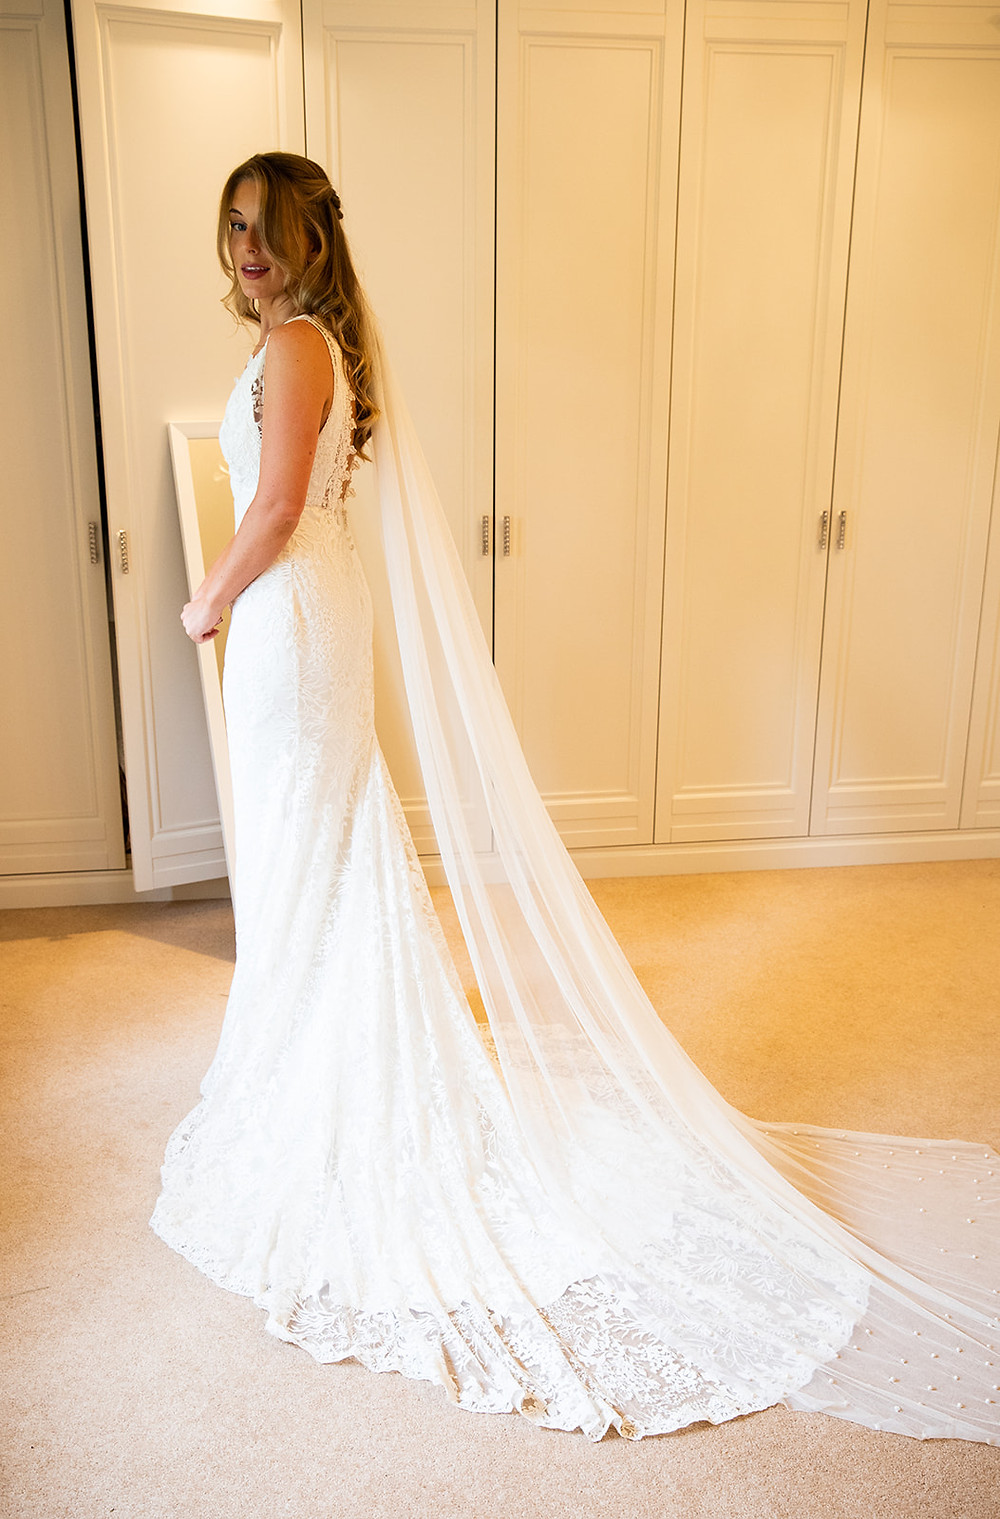 modern bride, boho bride, bespoke bride, lace dress, wedding dress, ivory dress, bride style, cathedral length veil, pure silk, silk dress, wedding gown, real bride, wedding veil, pearls, pearl veil,